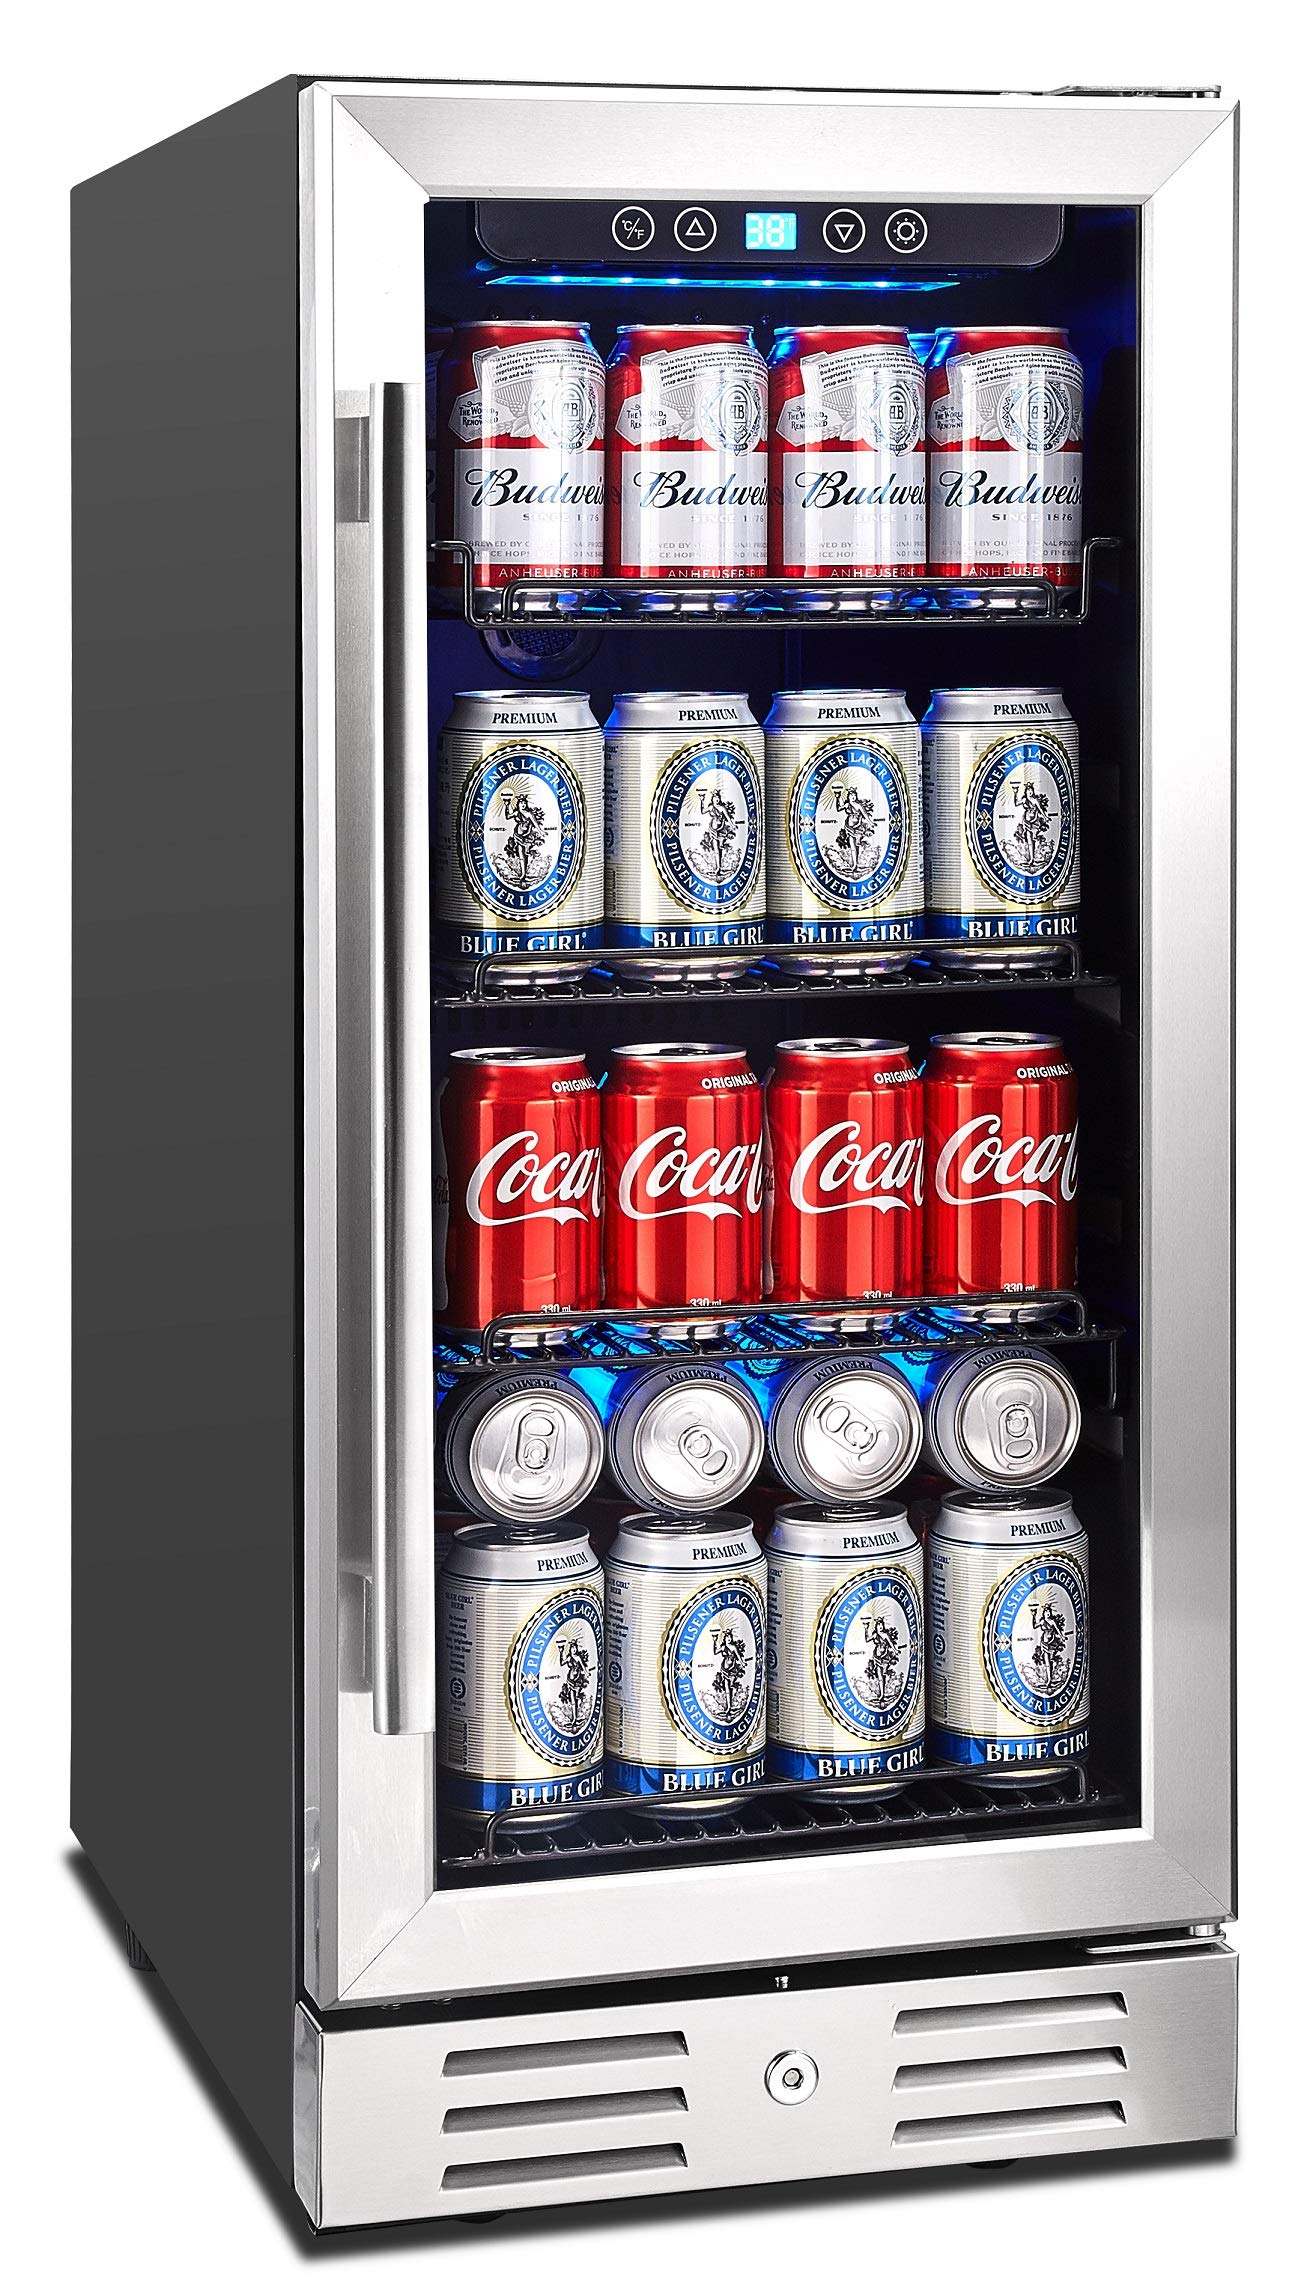 Kalamera 15'' Beverage Cooler 96 can Built-in or Freestanding Touch Control Beverage Fridge with Blue Interior Light by Kalamera